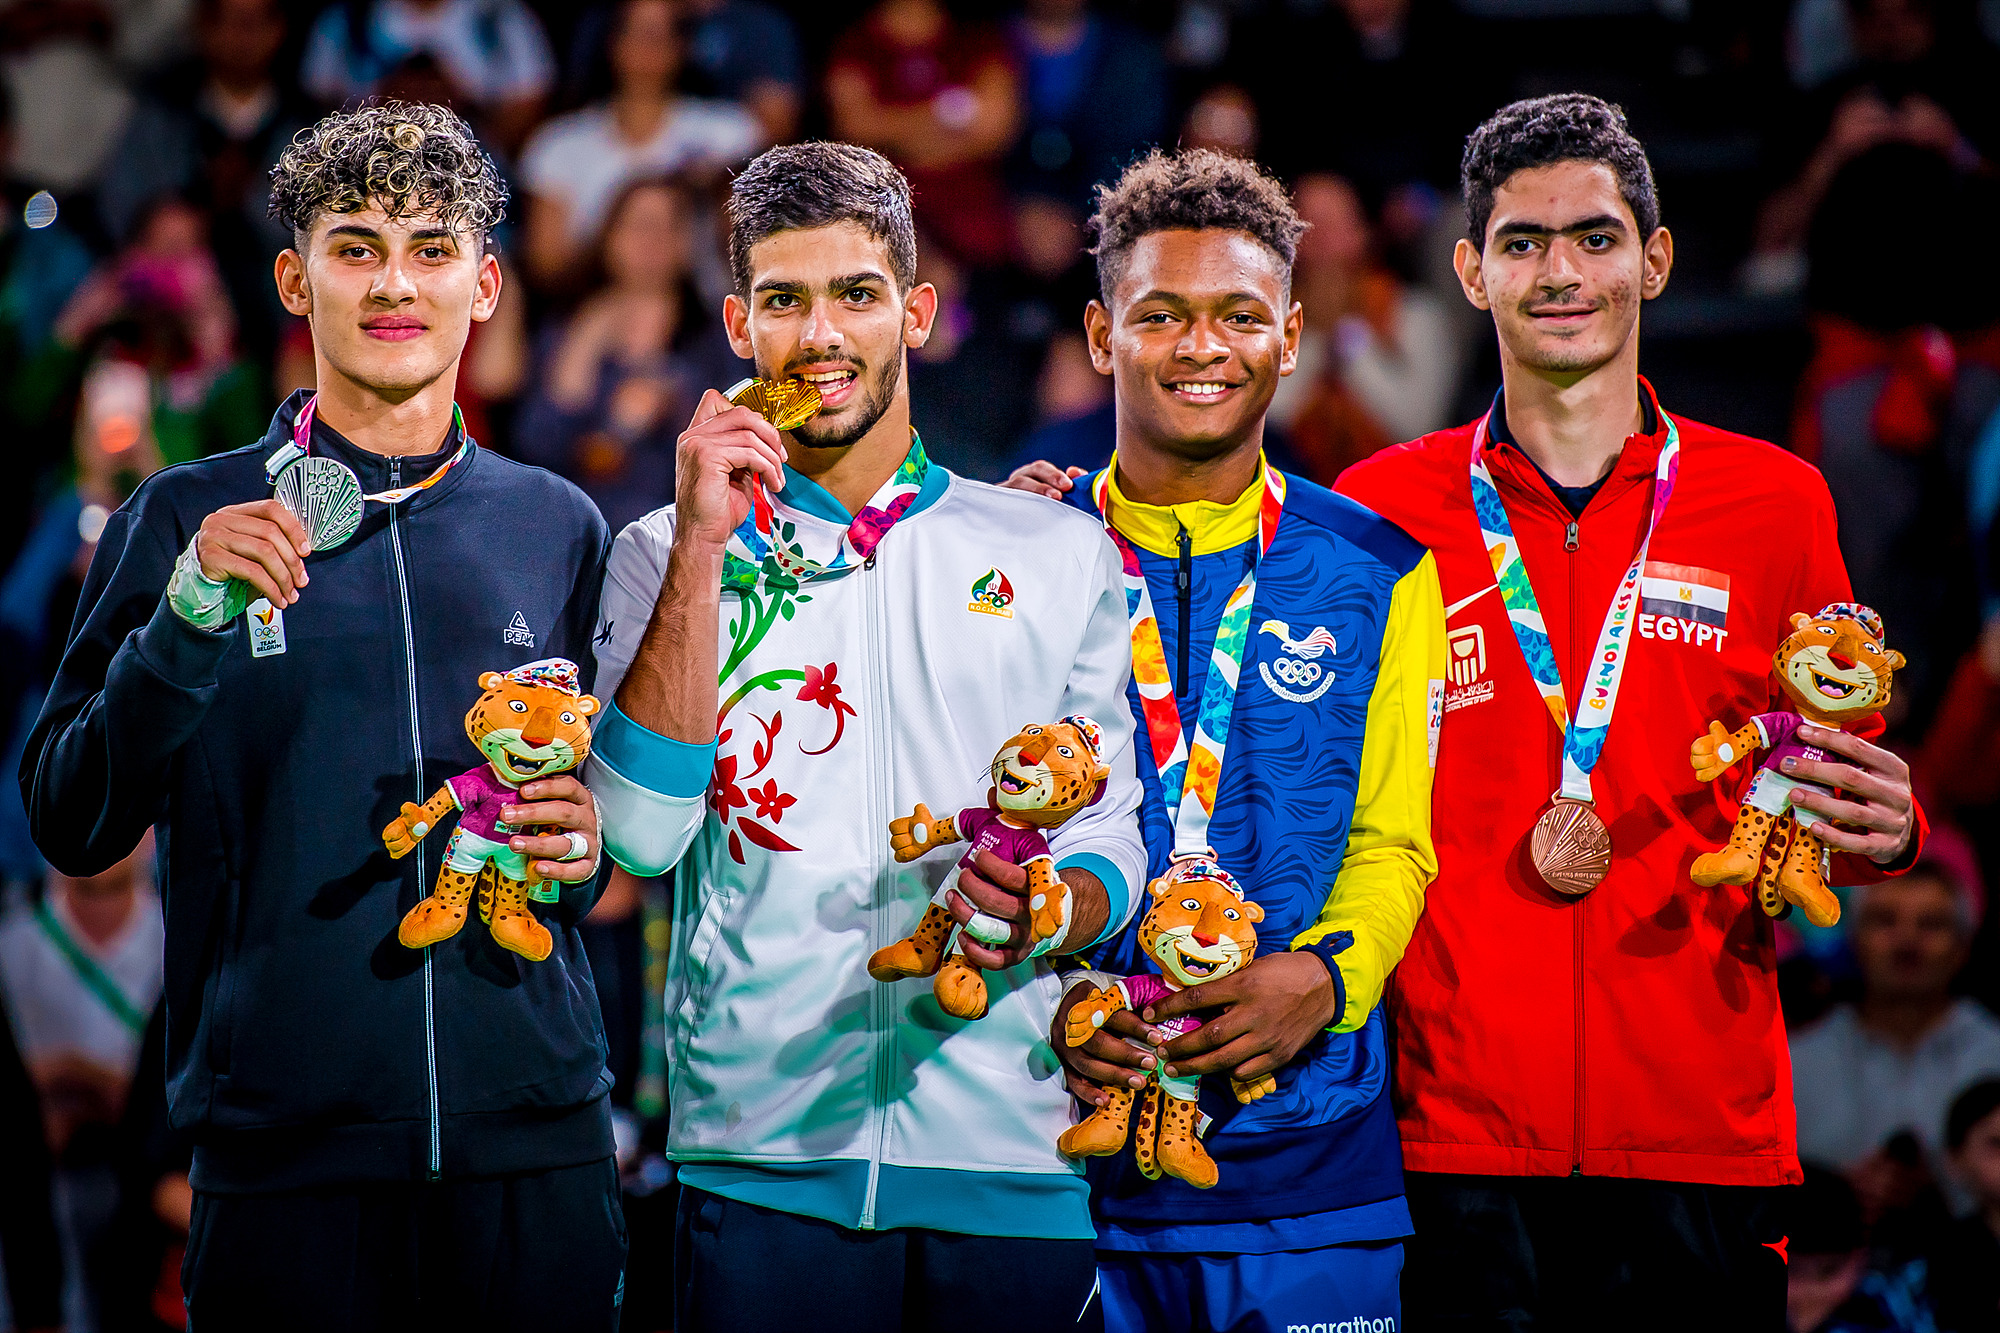 YOG (10.10.2018) Evening-68_Men -73kg medalists